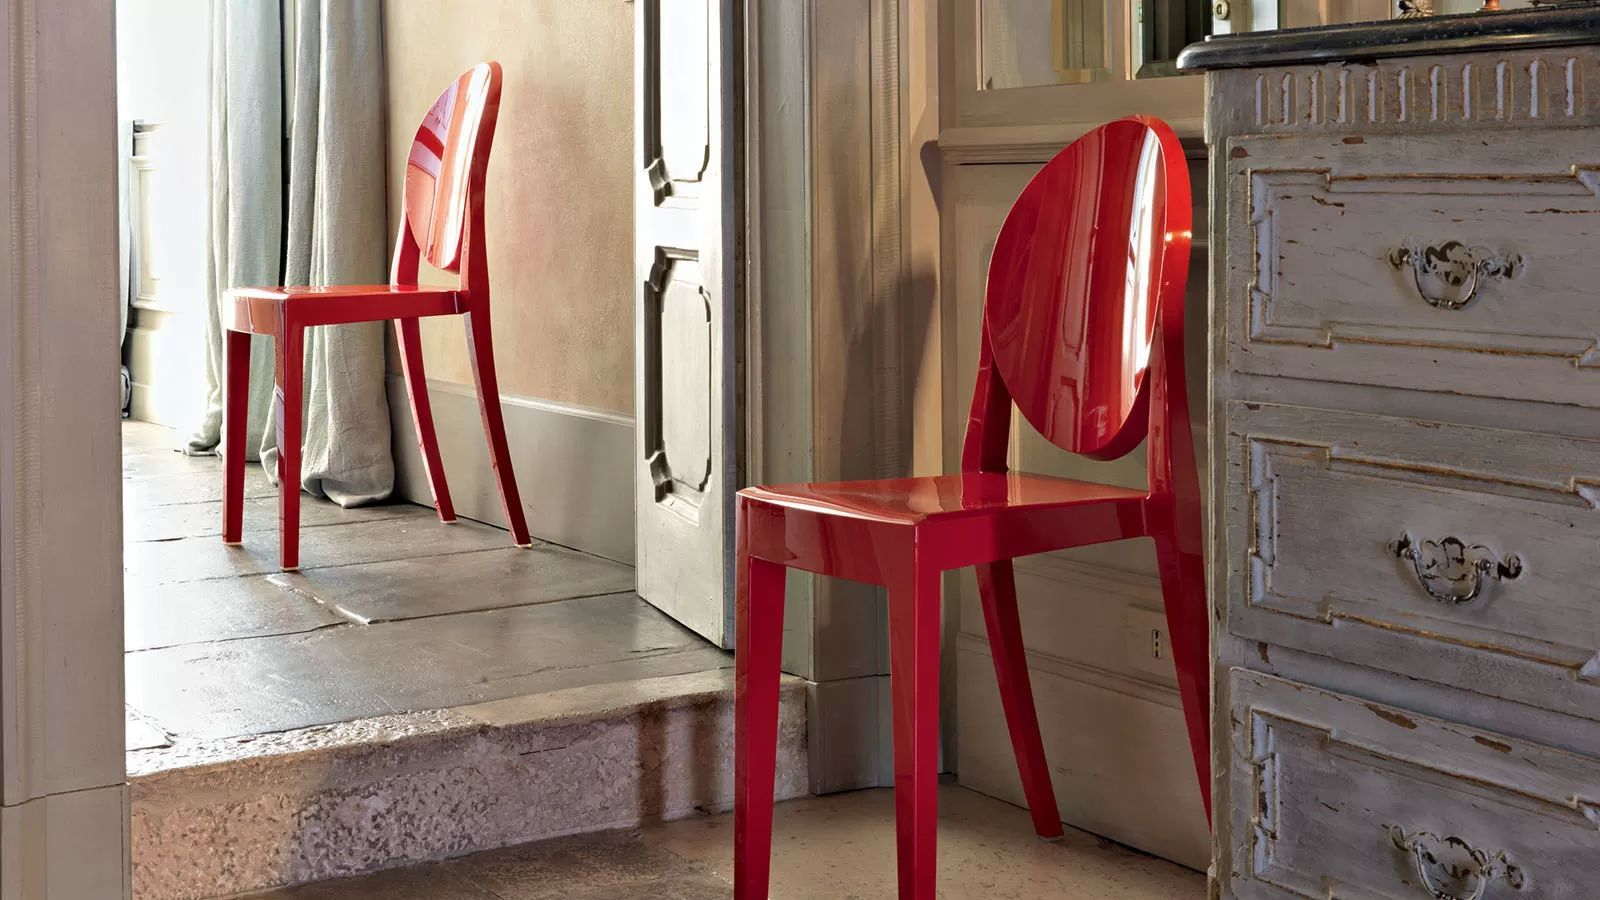 Cubo Kartell Victoria Ghost Chair By Kartell Dining Chairs Chair Design